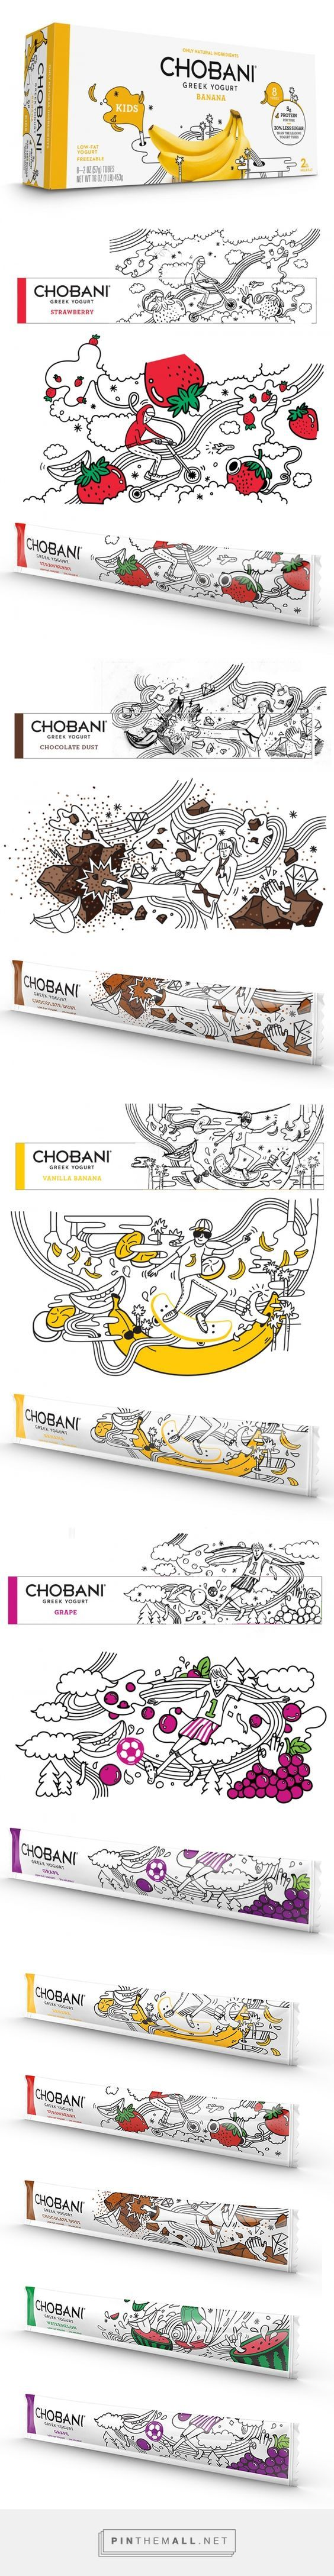 Chobani Yogurt Kids — The Dieline - Branding & Packaging where can I find these!: